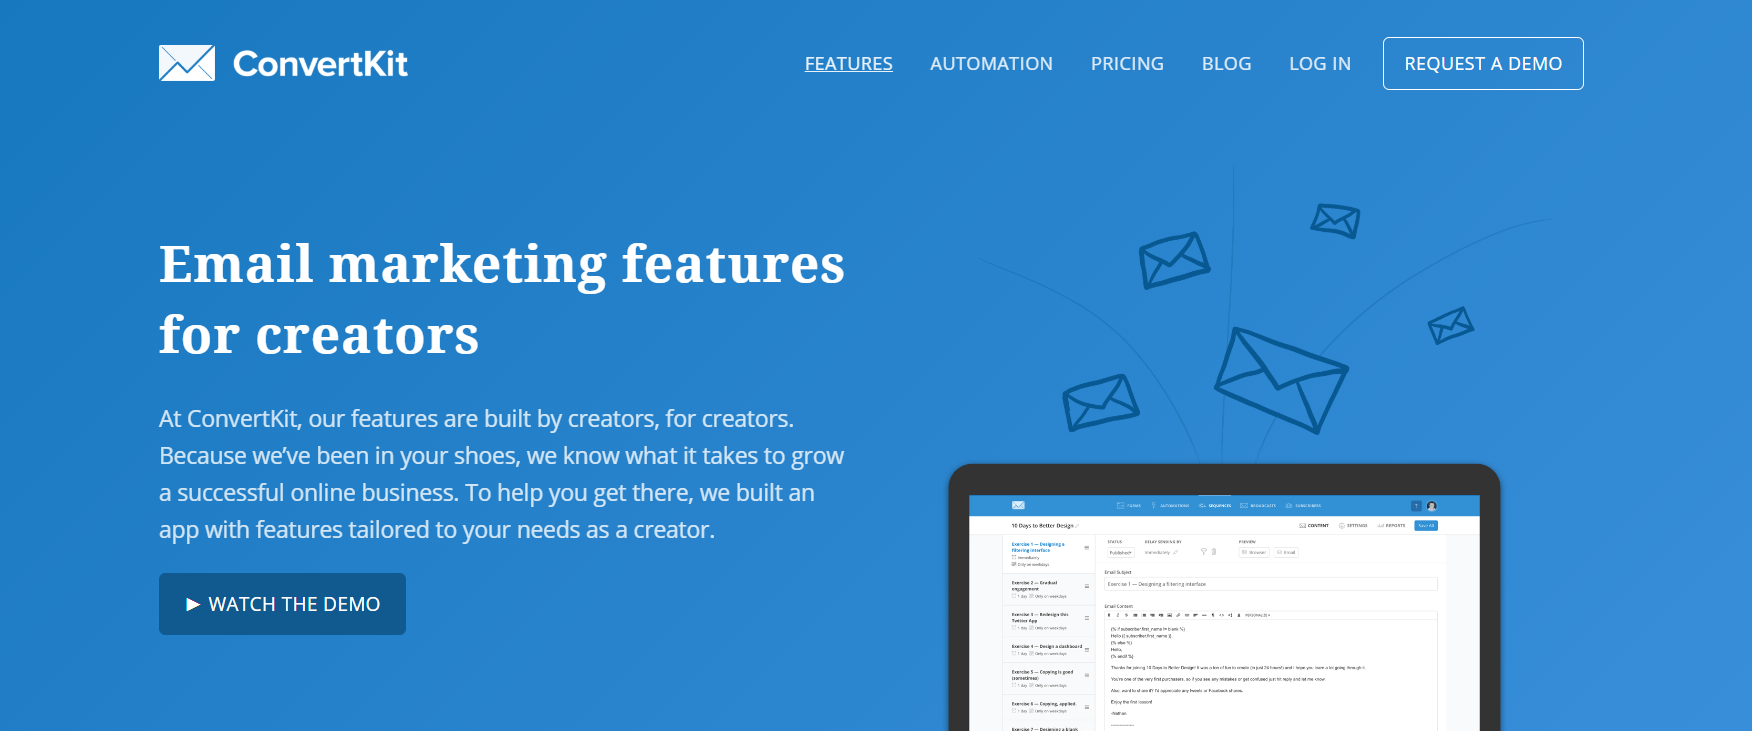 The ConvertKit website home page.